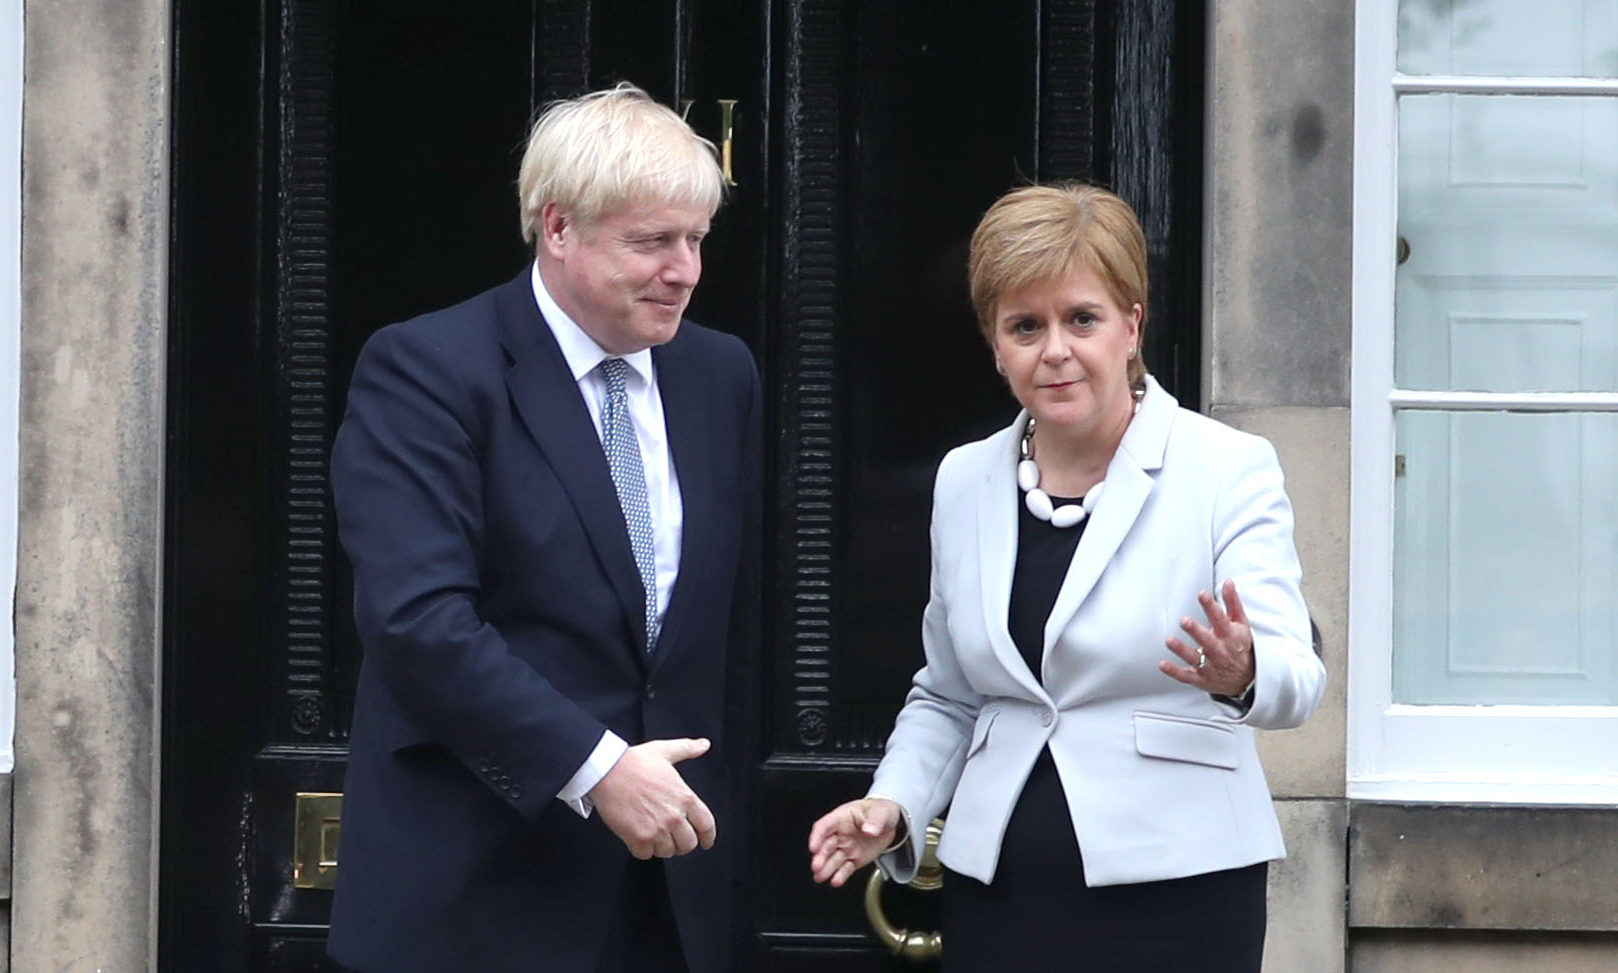 Boris Johnson and Nicola Sturgeon outside Bute House in Edinburgh.